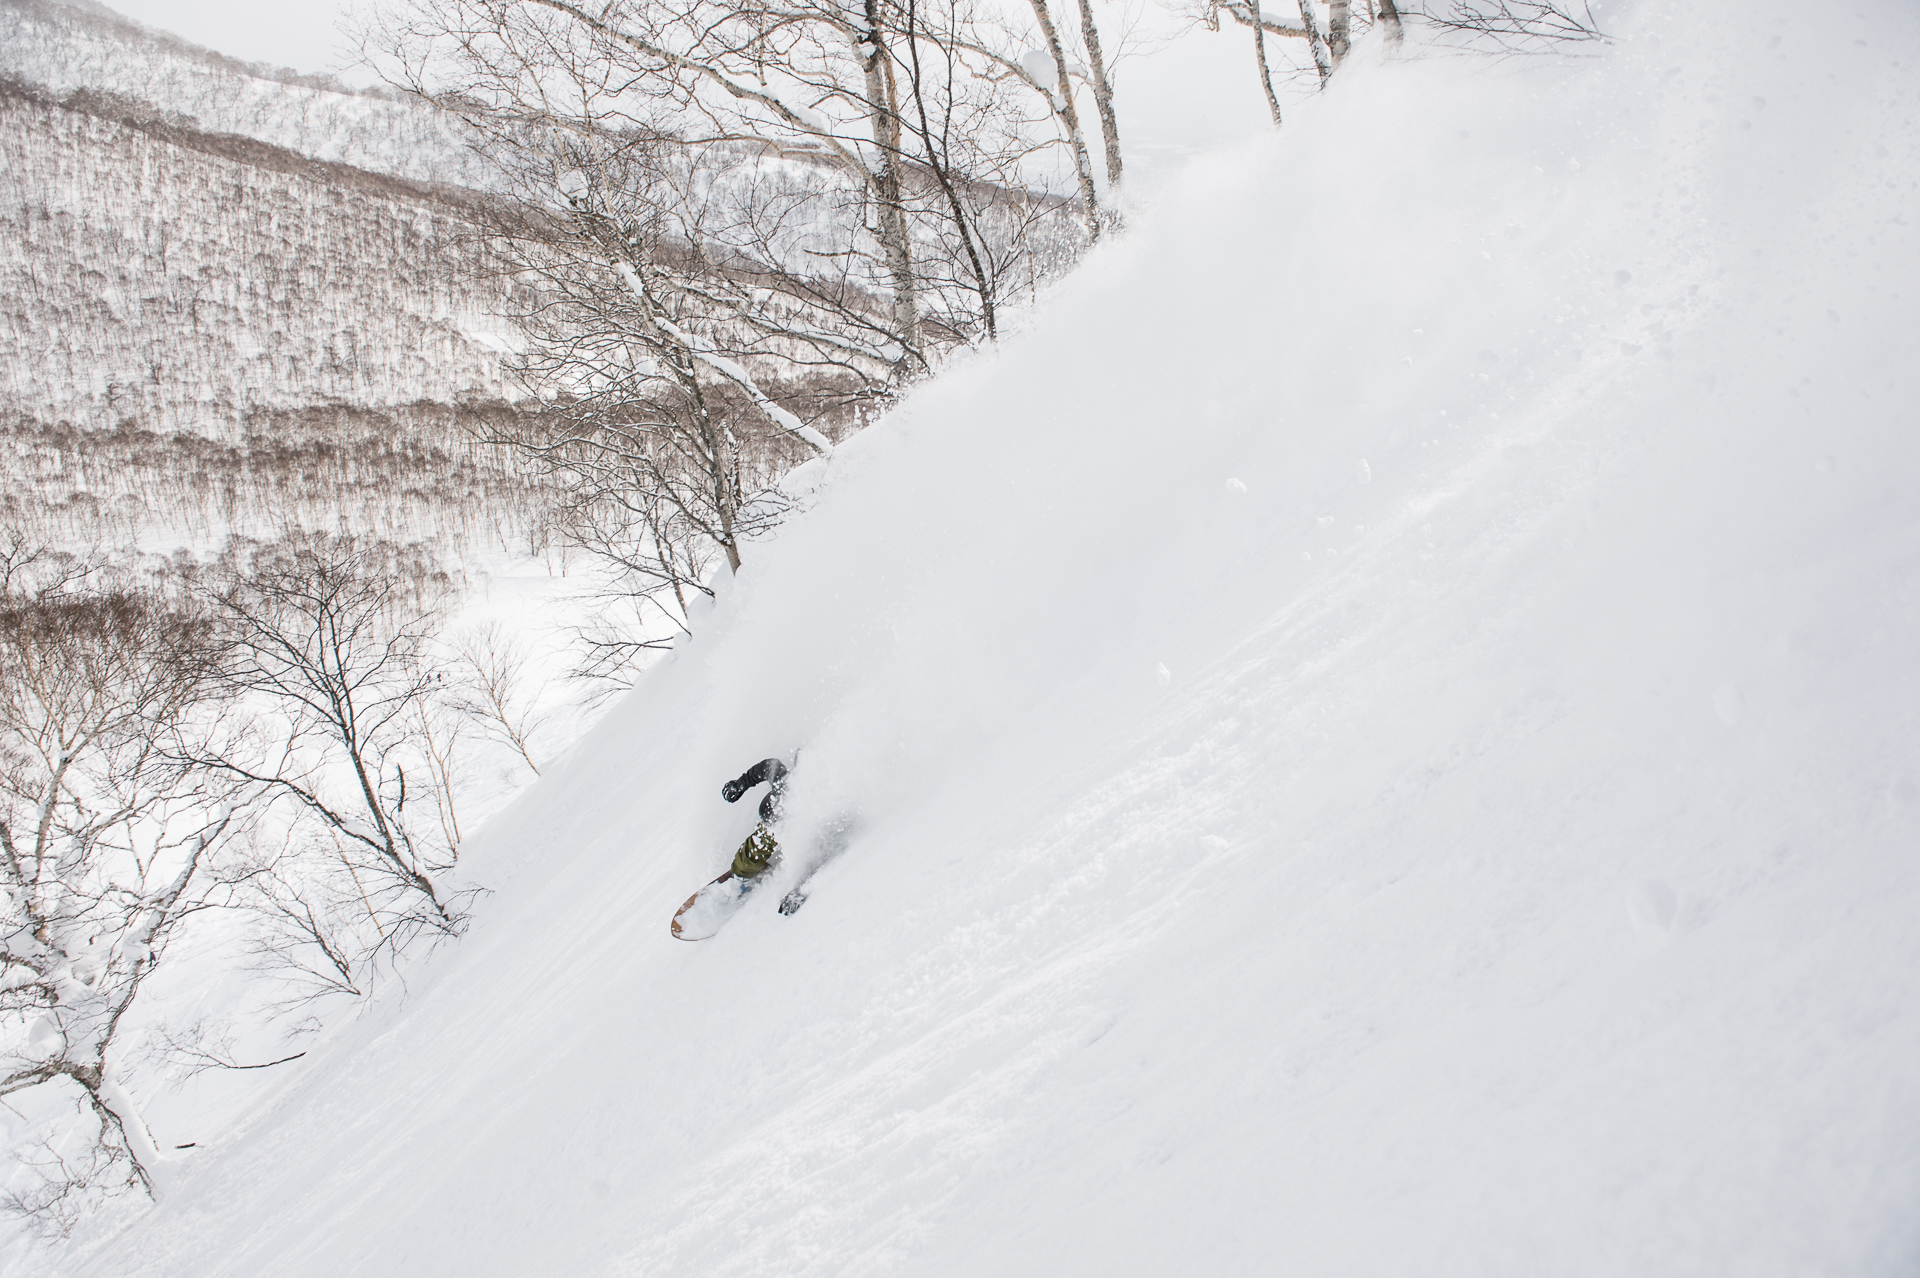 Colin Wiseman, Hokkaido, Japan, as see in Issue 12.1. Photo: Rip Zinger.